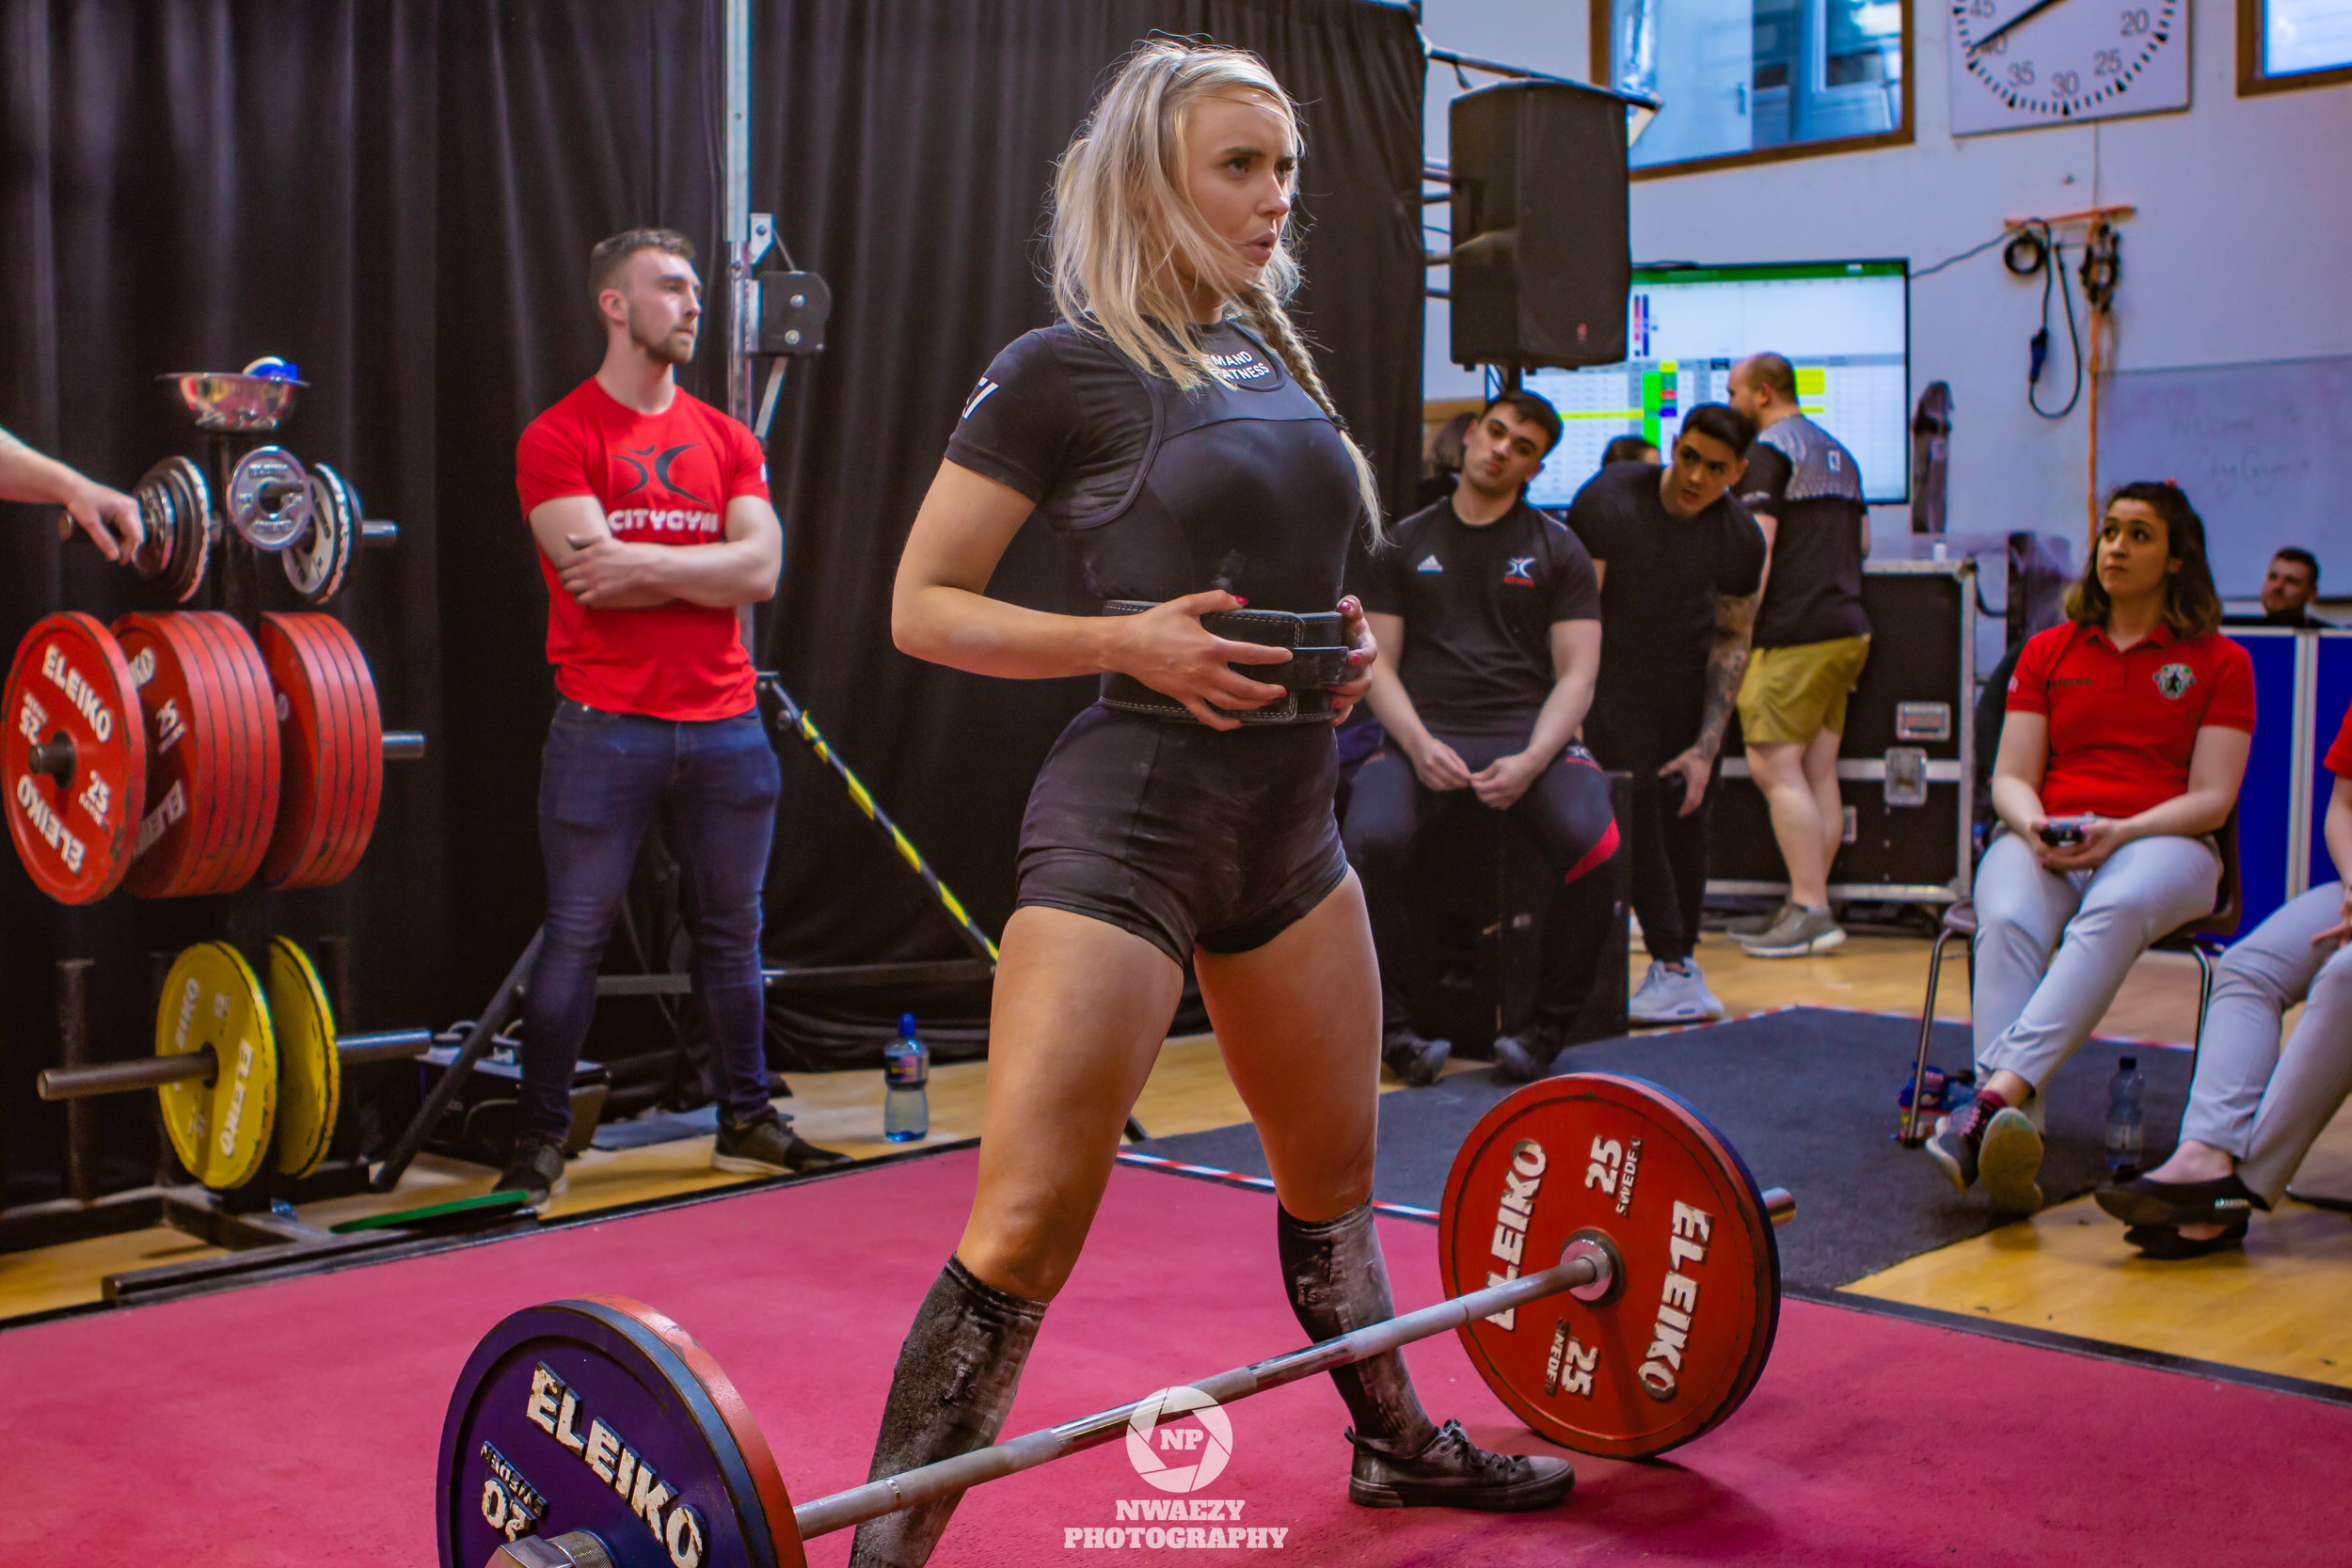 Shannon Burke - I honestly couldn't recommend CityGym enough, since joining in October of last year I've managed to reach all the short term goals that I had set out for myself in regards to squat, bench and deadlift and I am still progressing with the help of my coach Stephen! But more importantly I've become part of what I would consider to be the best powerlifting team in Ireland! Everyone that I have met so far since joking have been so welcoming and supportive, I've had the pleasure of training in CityGym three times and each time I've wished that I lived closer so I could always train there!! Great atmosphere, great equipment and the best coaches, I honestly couldn't recommend CityGym enough ❤️